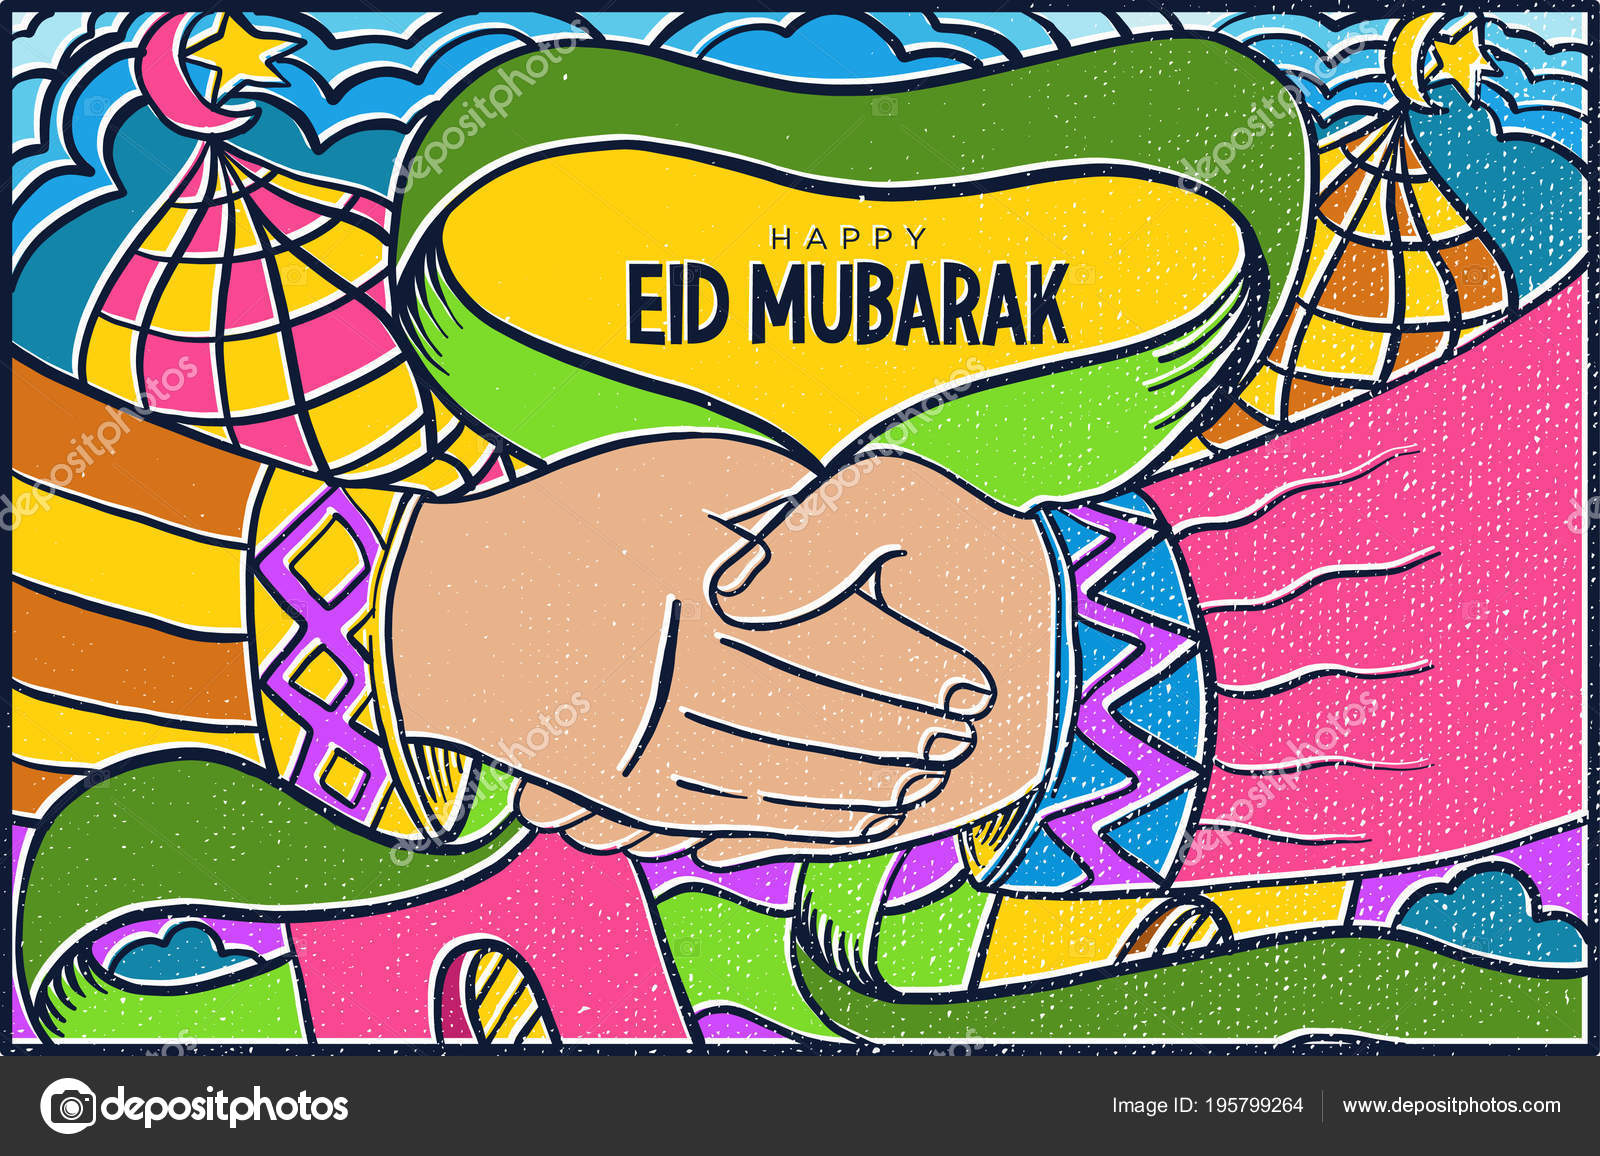 Eid Mubarak Eid Fitr Pop Art Wallpaper Mosaic Background